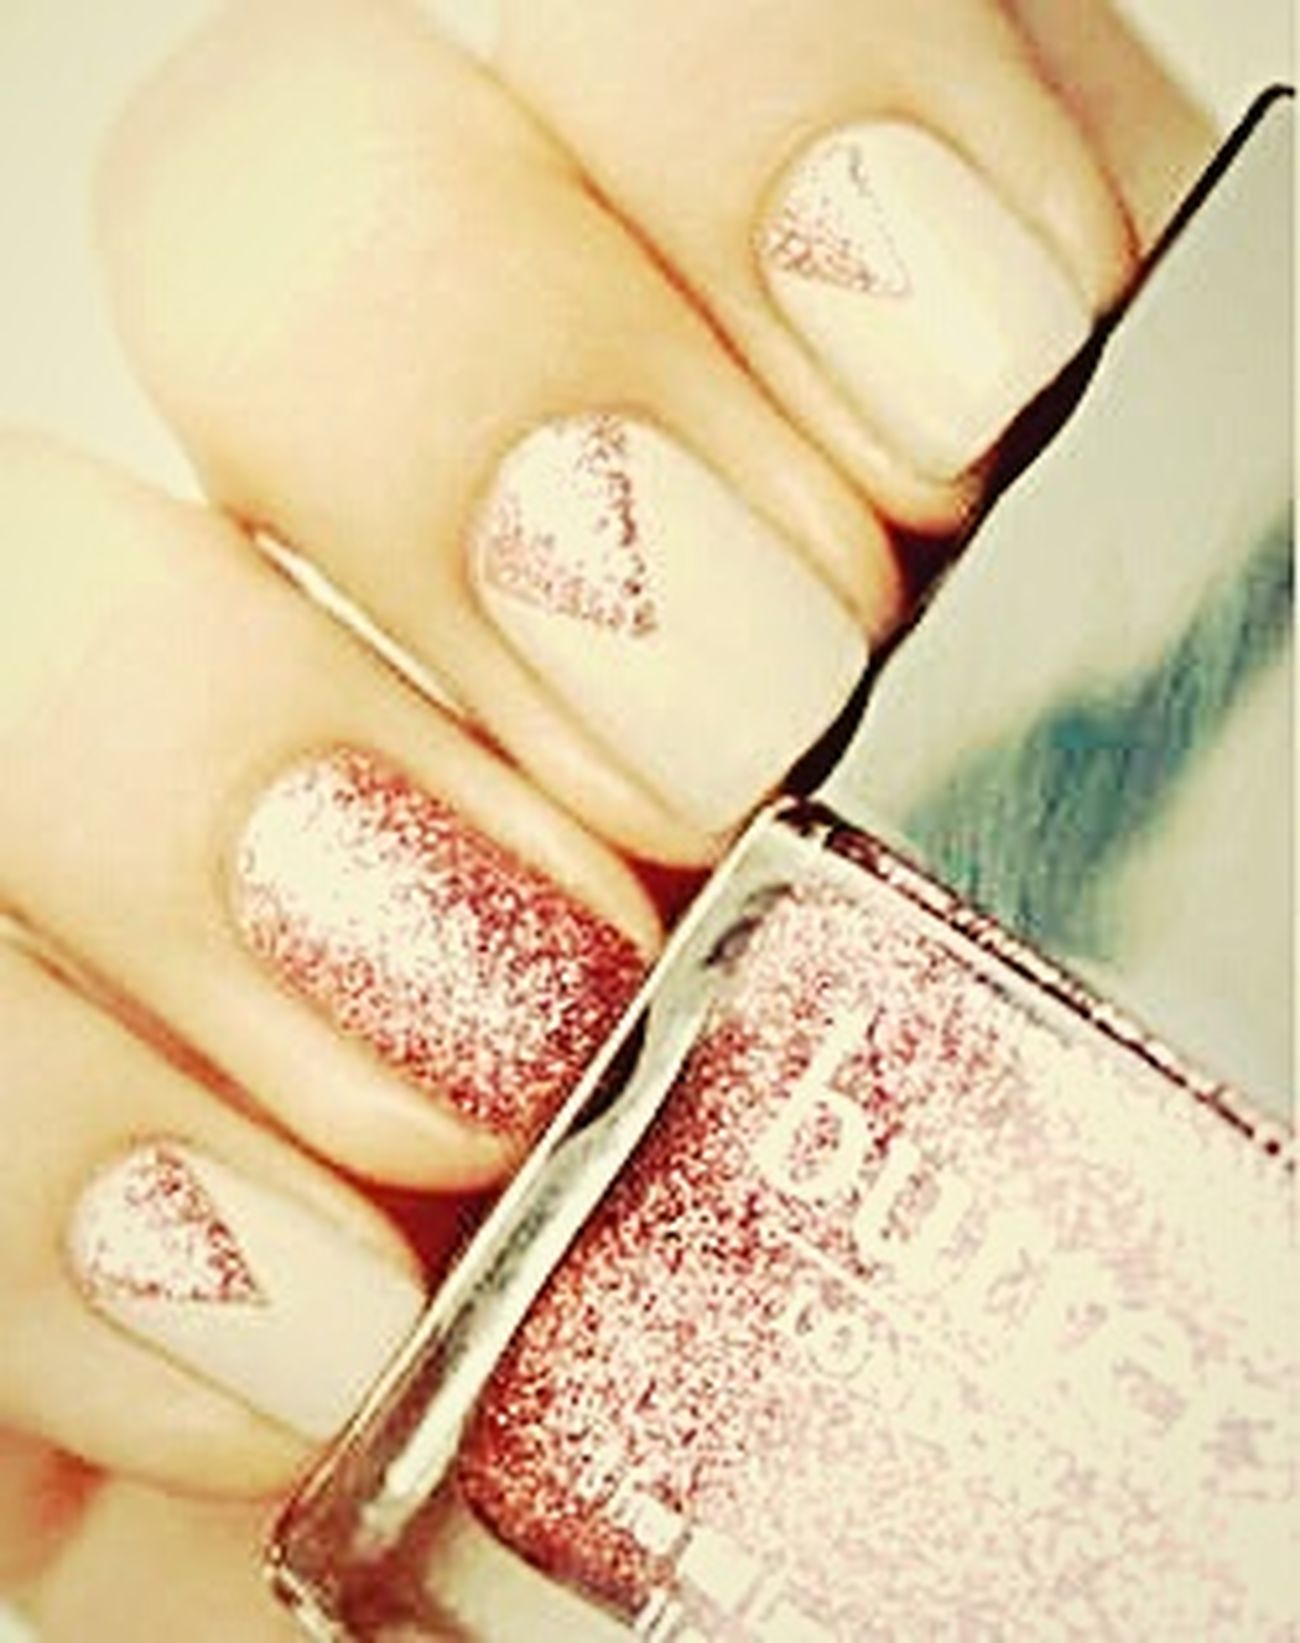 Nails <3 Vernis Nails Done Ongles Vernis à Ongle